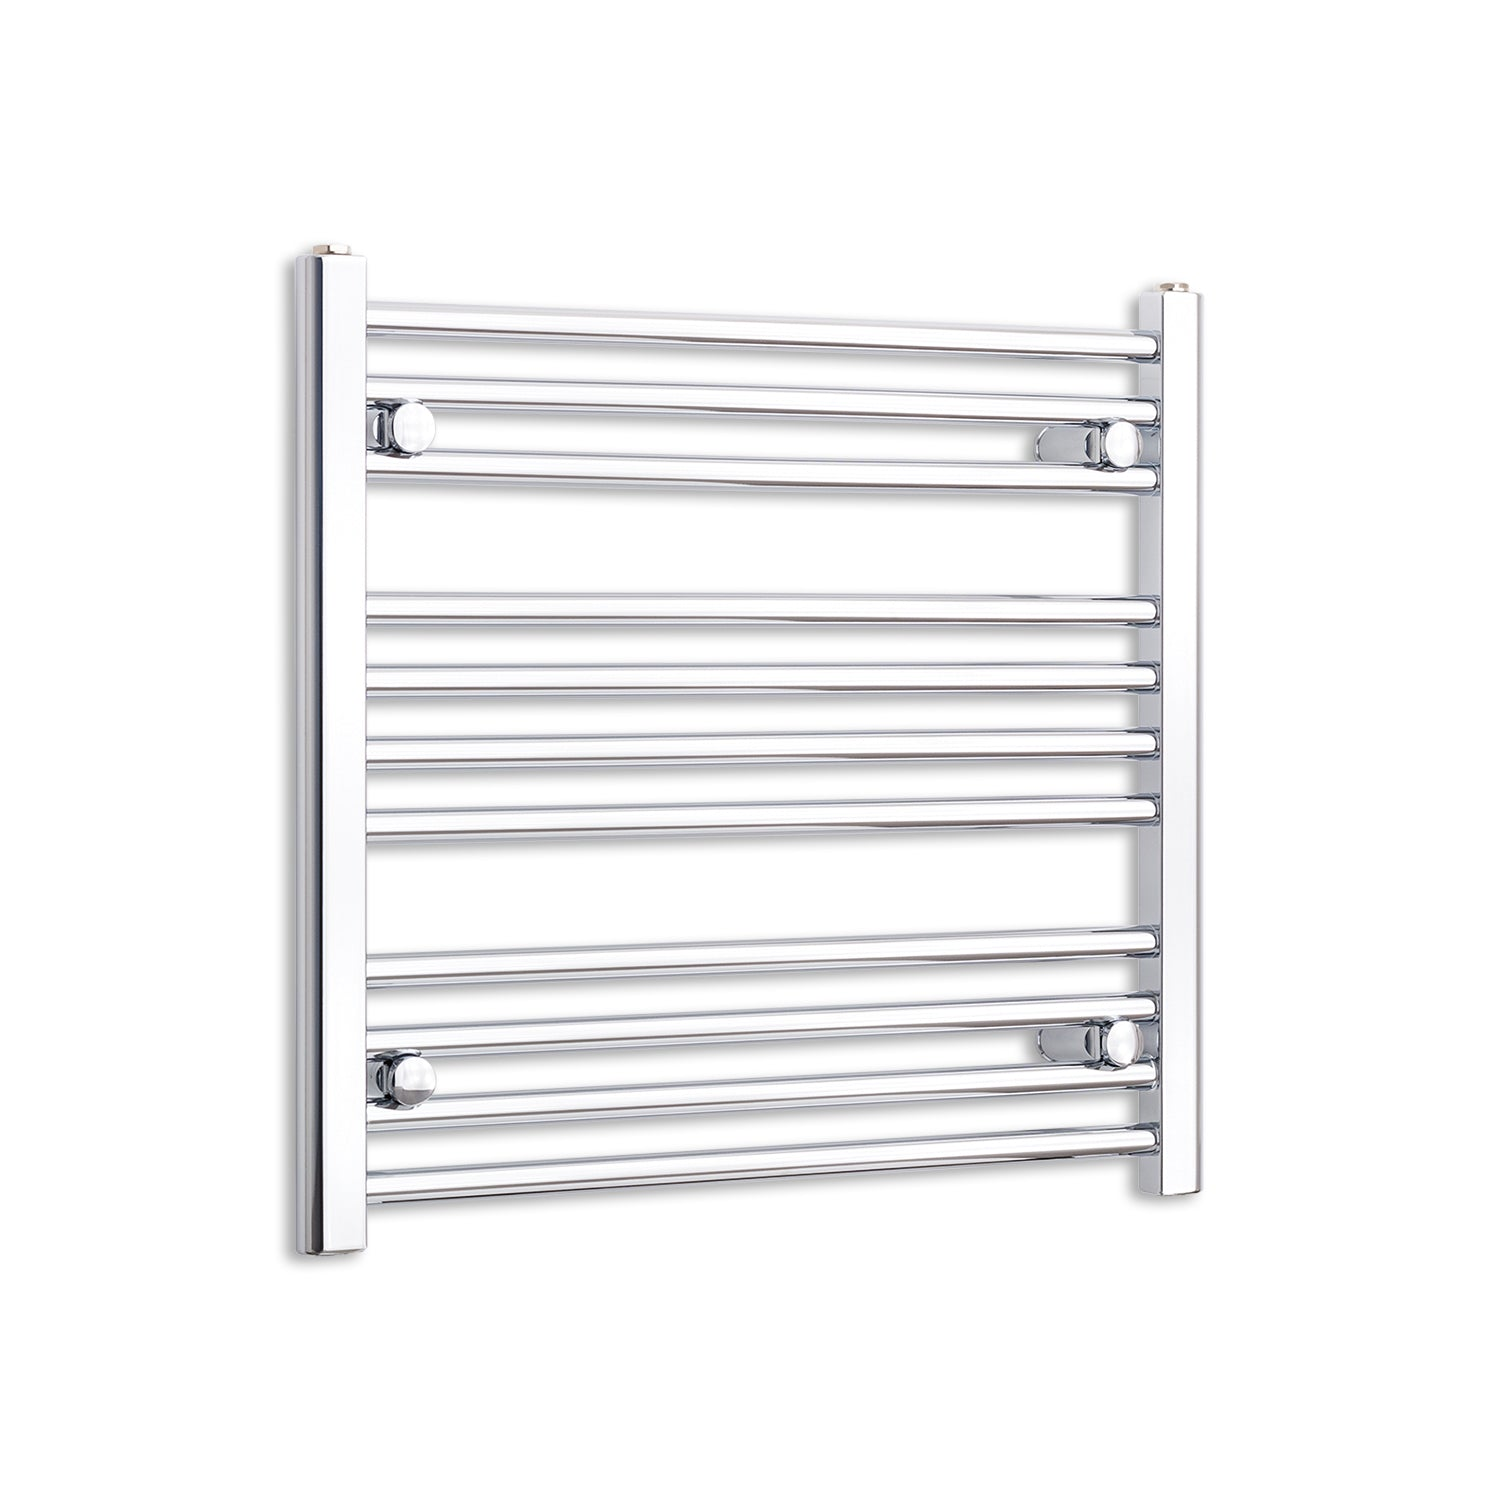 600mm Wide 600mm High Chrome Towel Rail Radiator